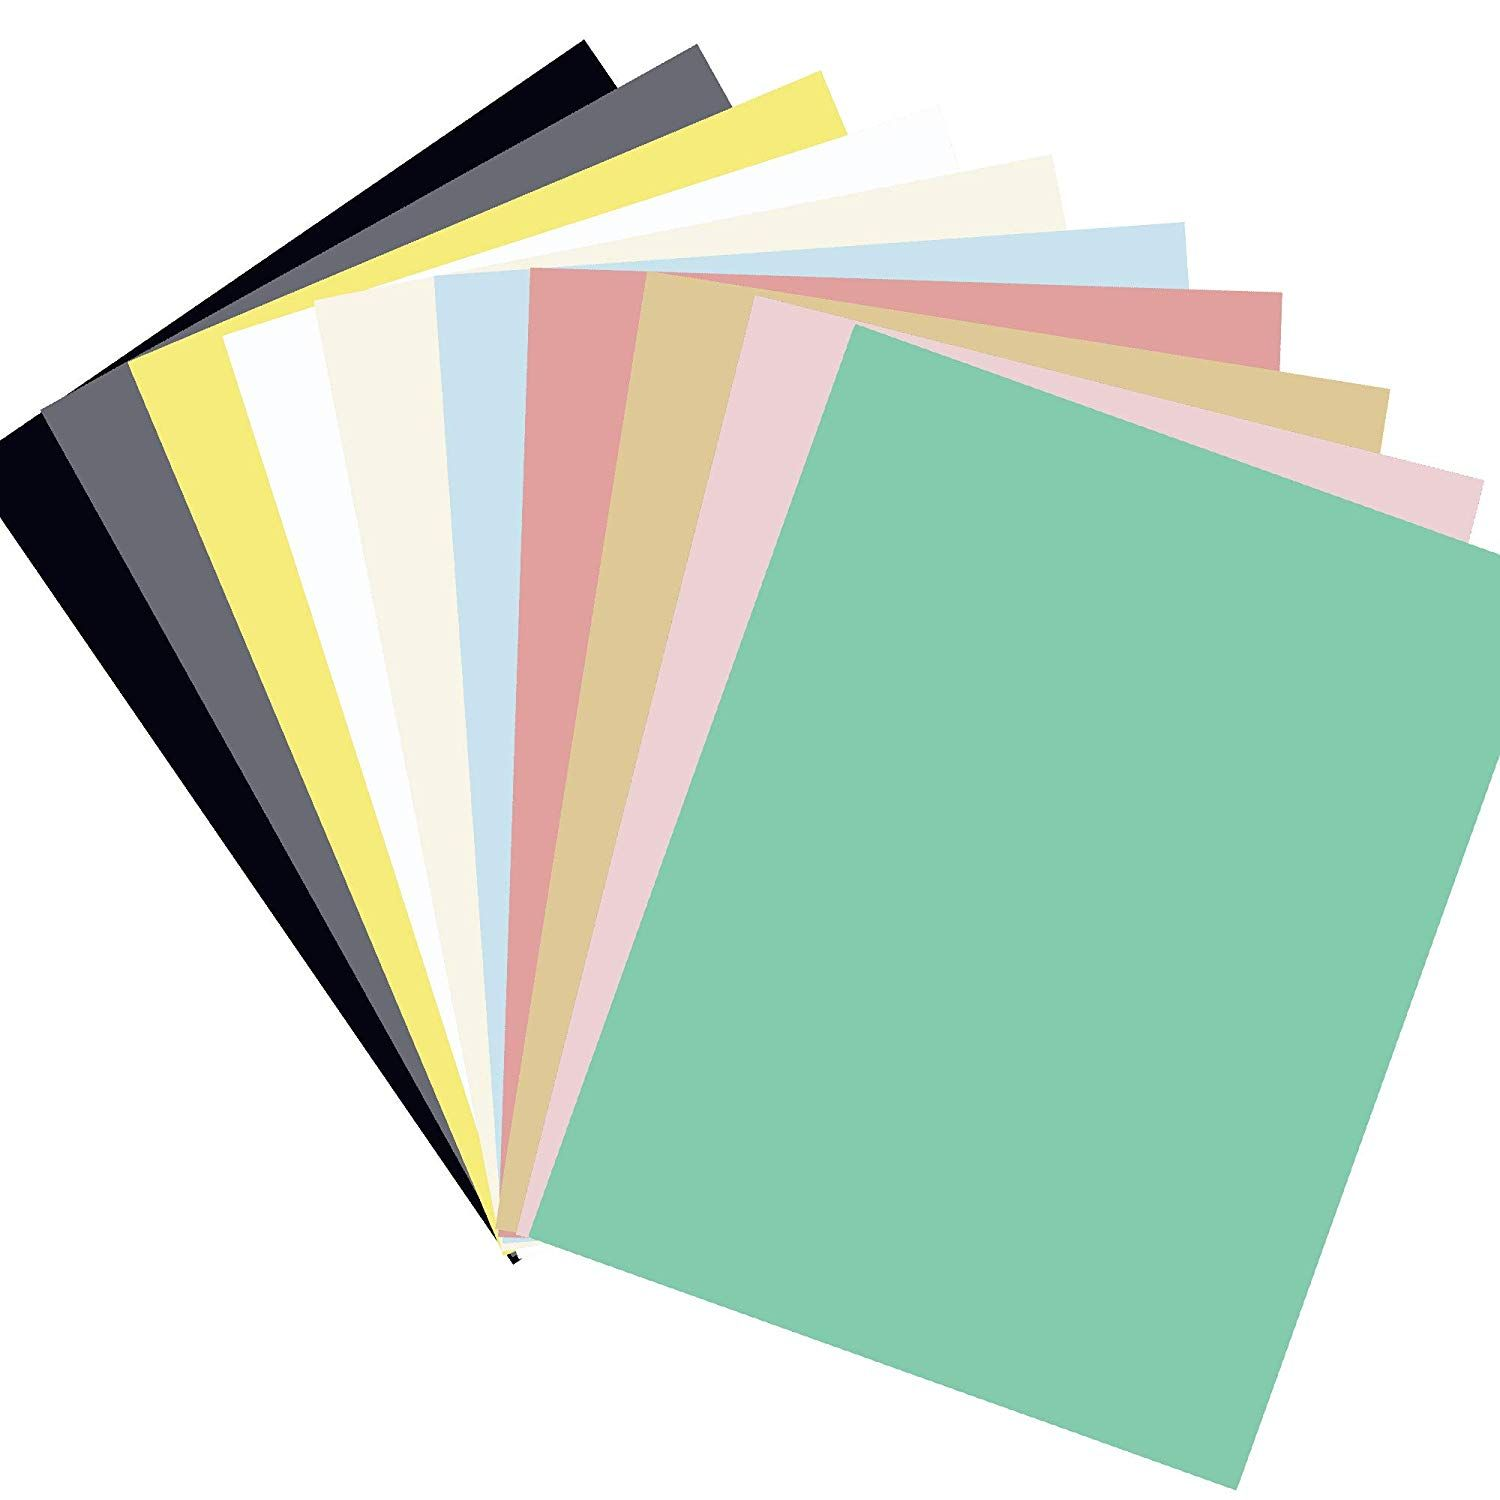 Diy Paper Cardstock 50 Sheets 10 Vivid Color Cardstock A4 Size 230gms Craft Paper For Card Making Scrapb Diy Craft Projects Diy Scrapbook Halloween Party Decor